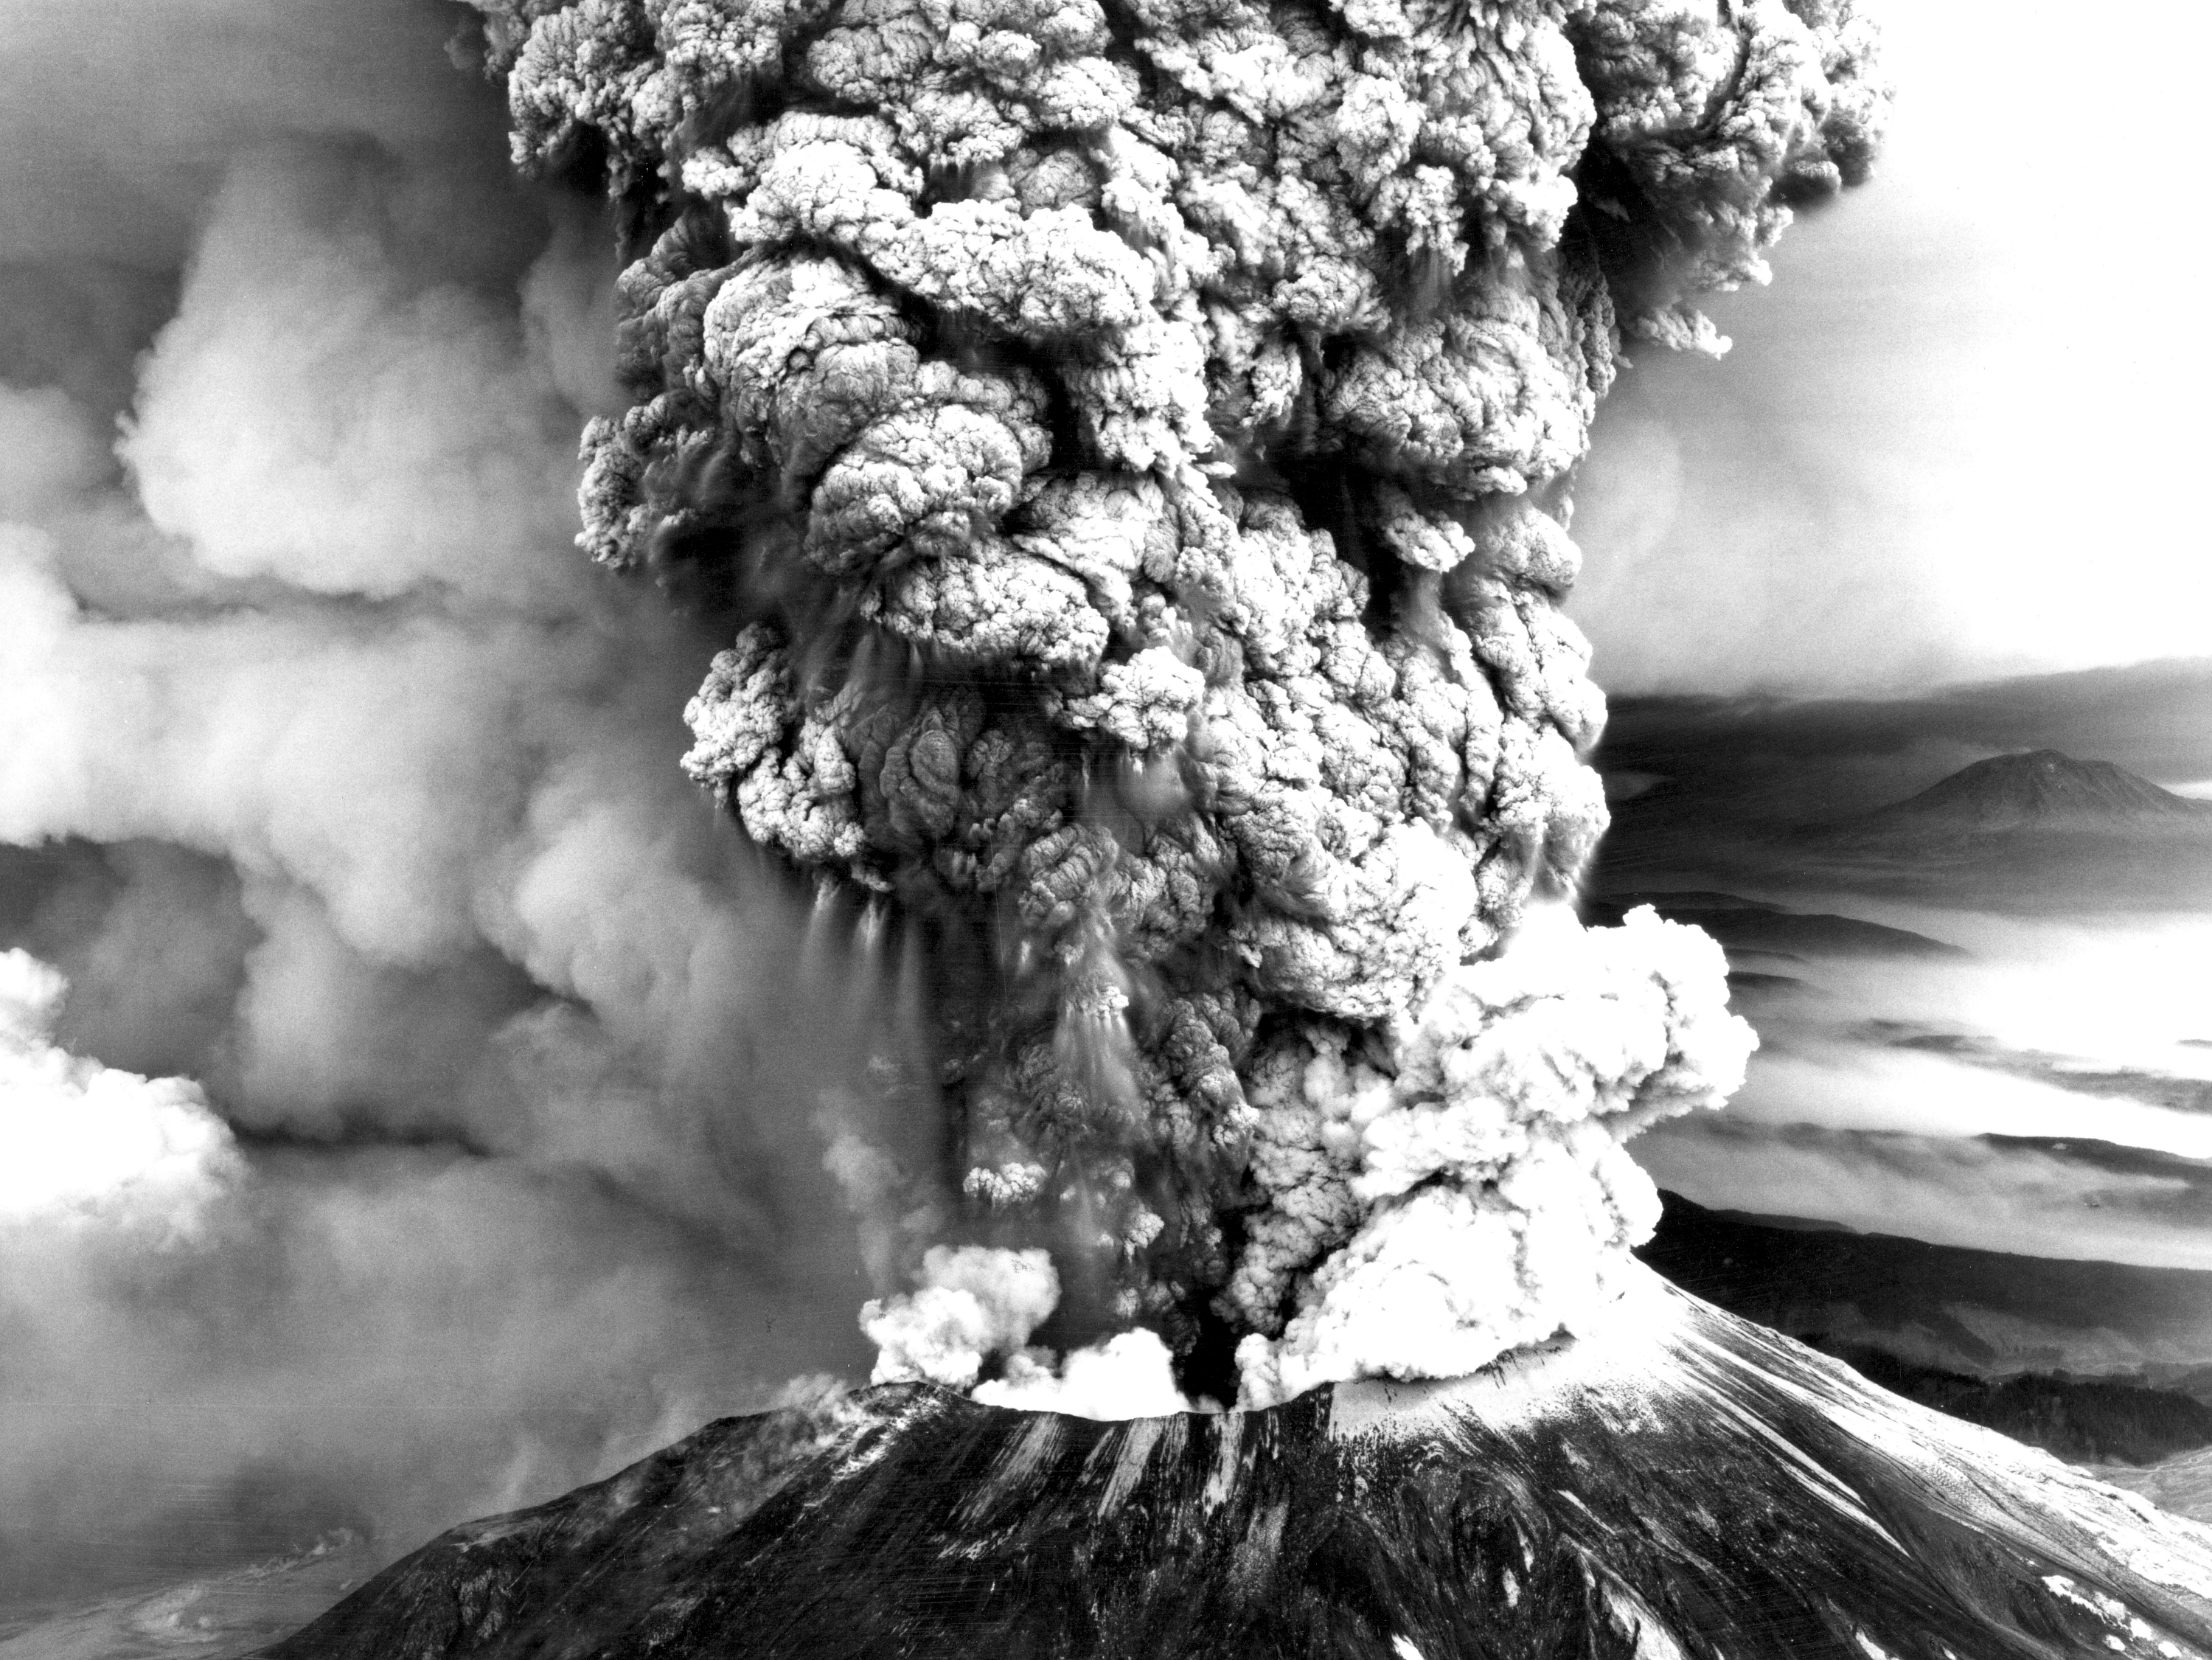 Plinian column from May 18 1980 eruption of Mount St Helens Aeri 3000x2251